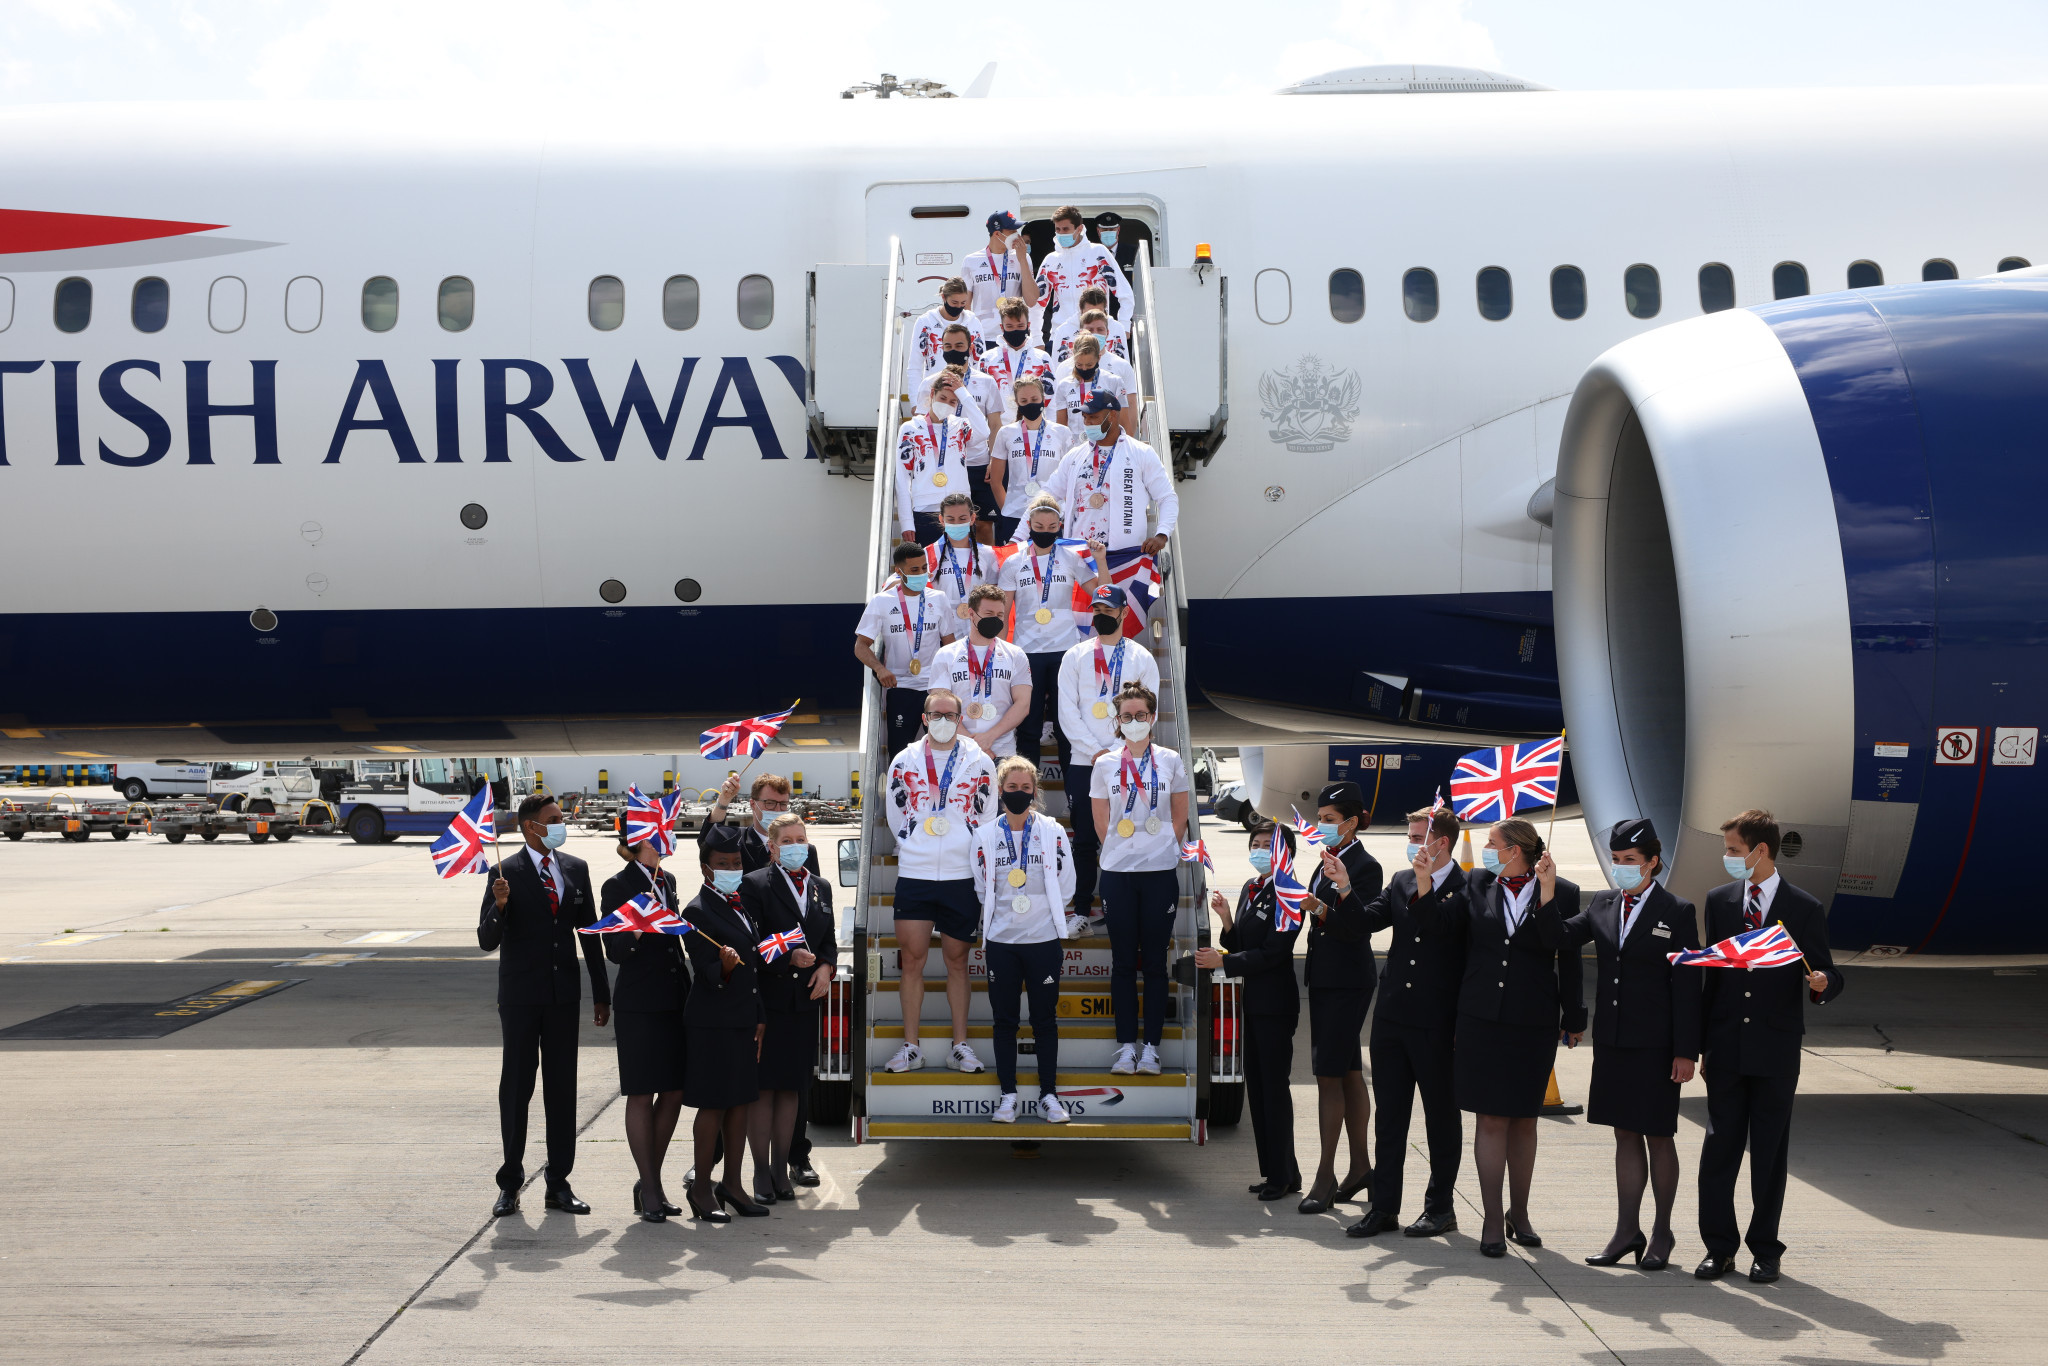 British and German Olympians among those celebrated on return from Tokyo 2020